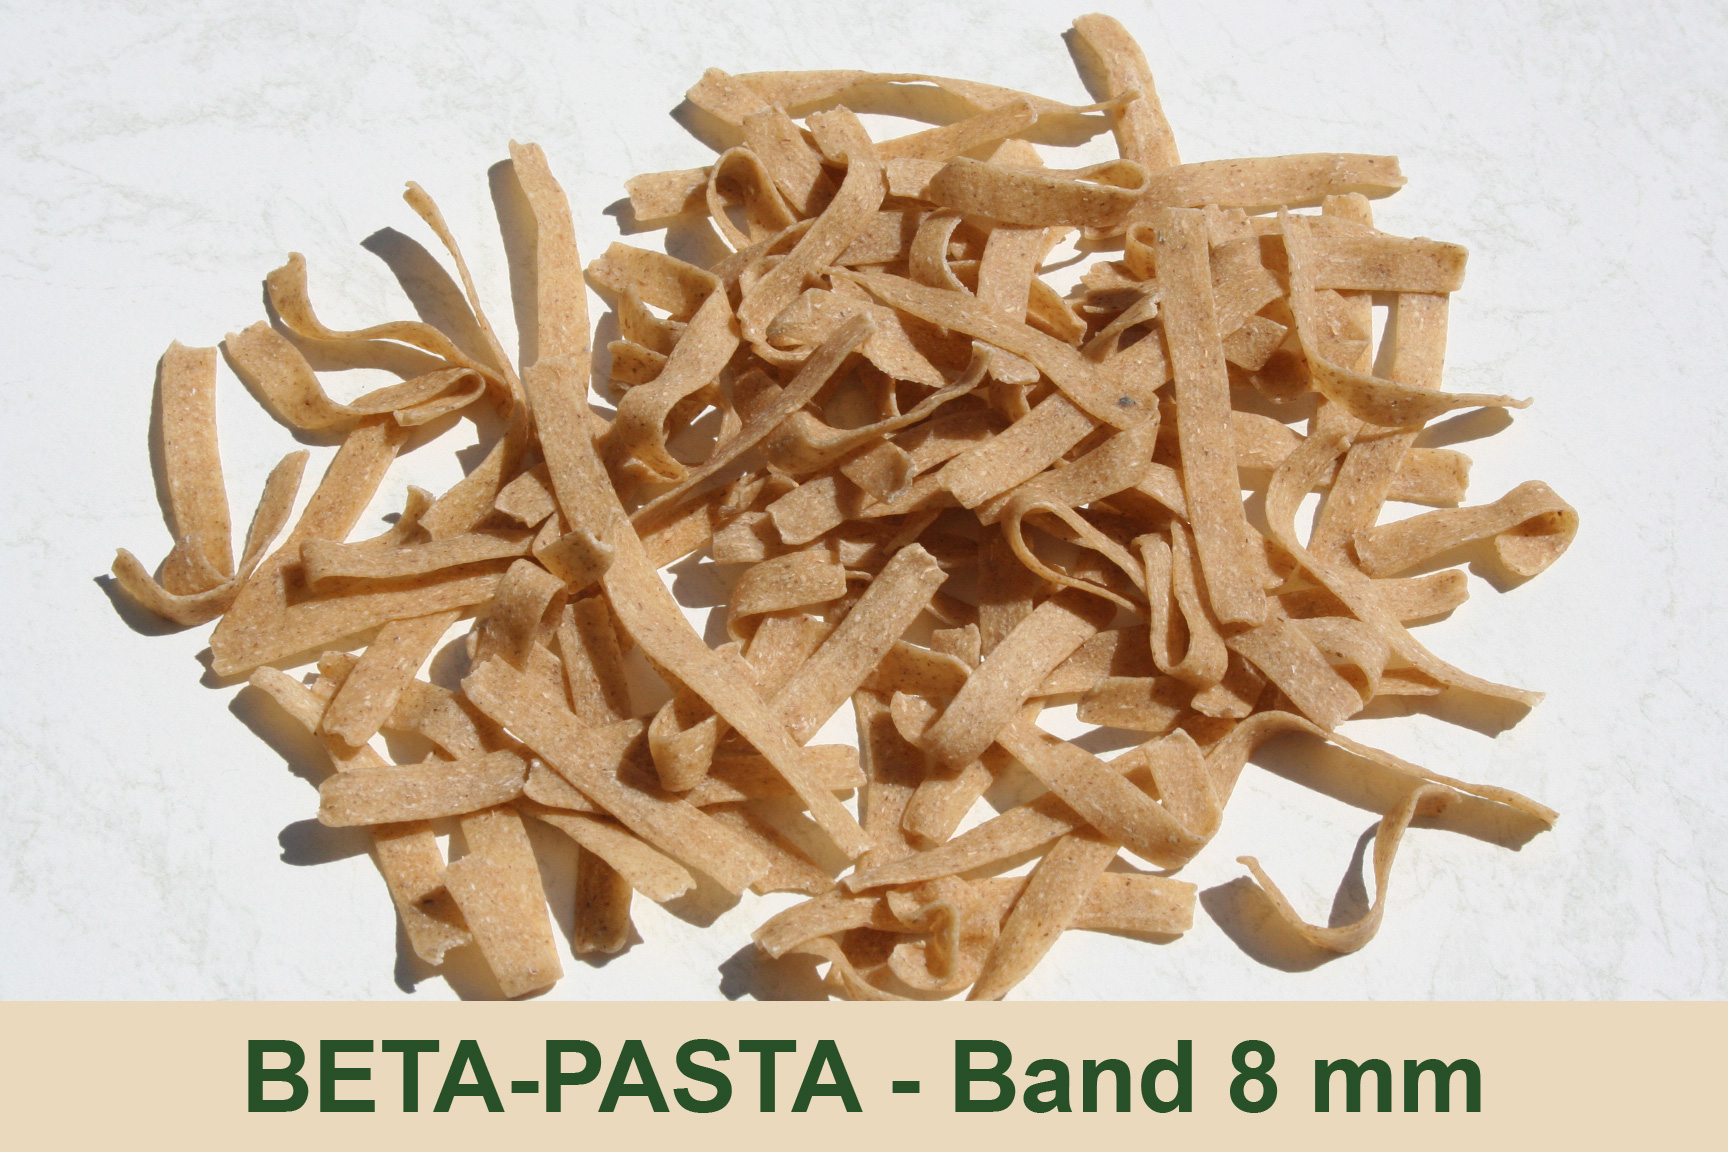 BETA-PASTA - Band 8 mm